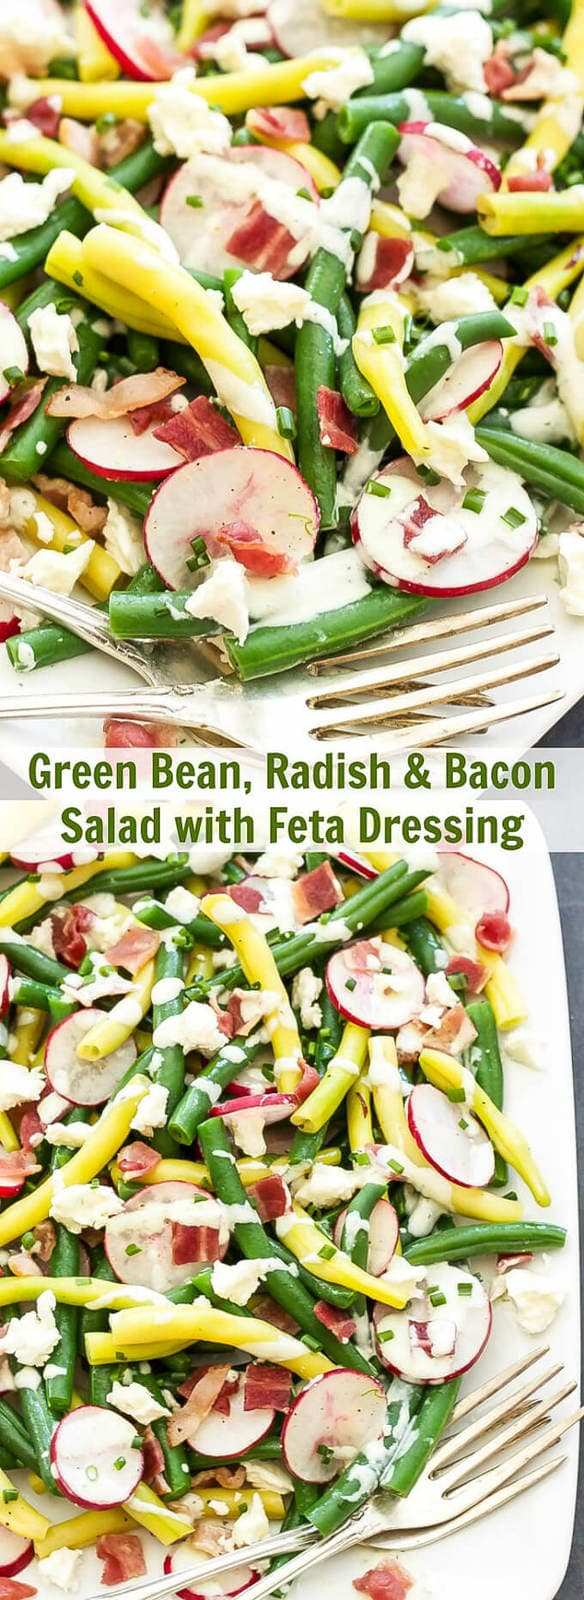 Green-Bean-Radish-Bacon-Salad-with-Creamy-Feta-Dressing4